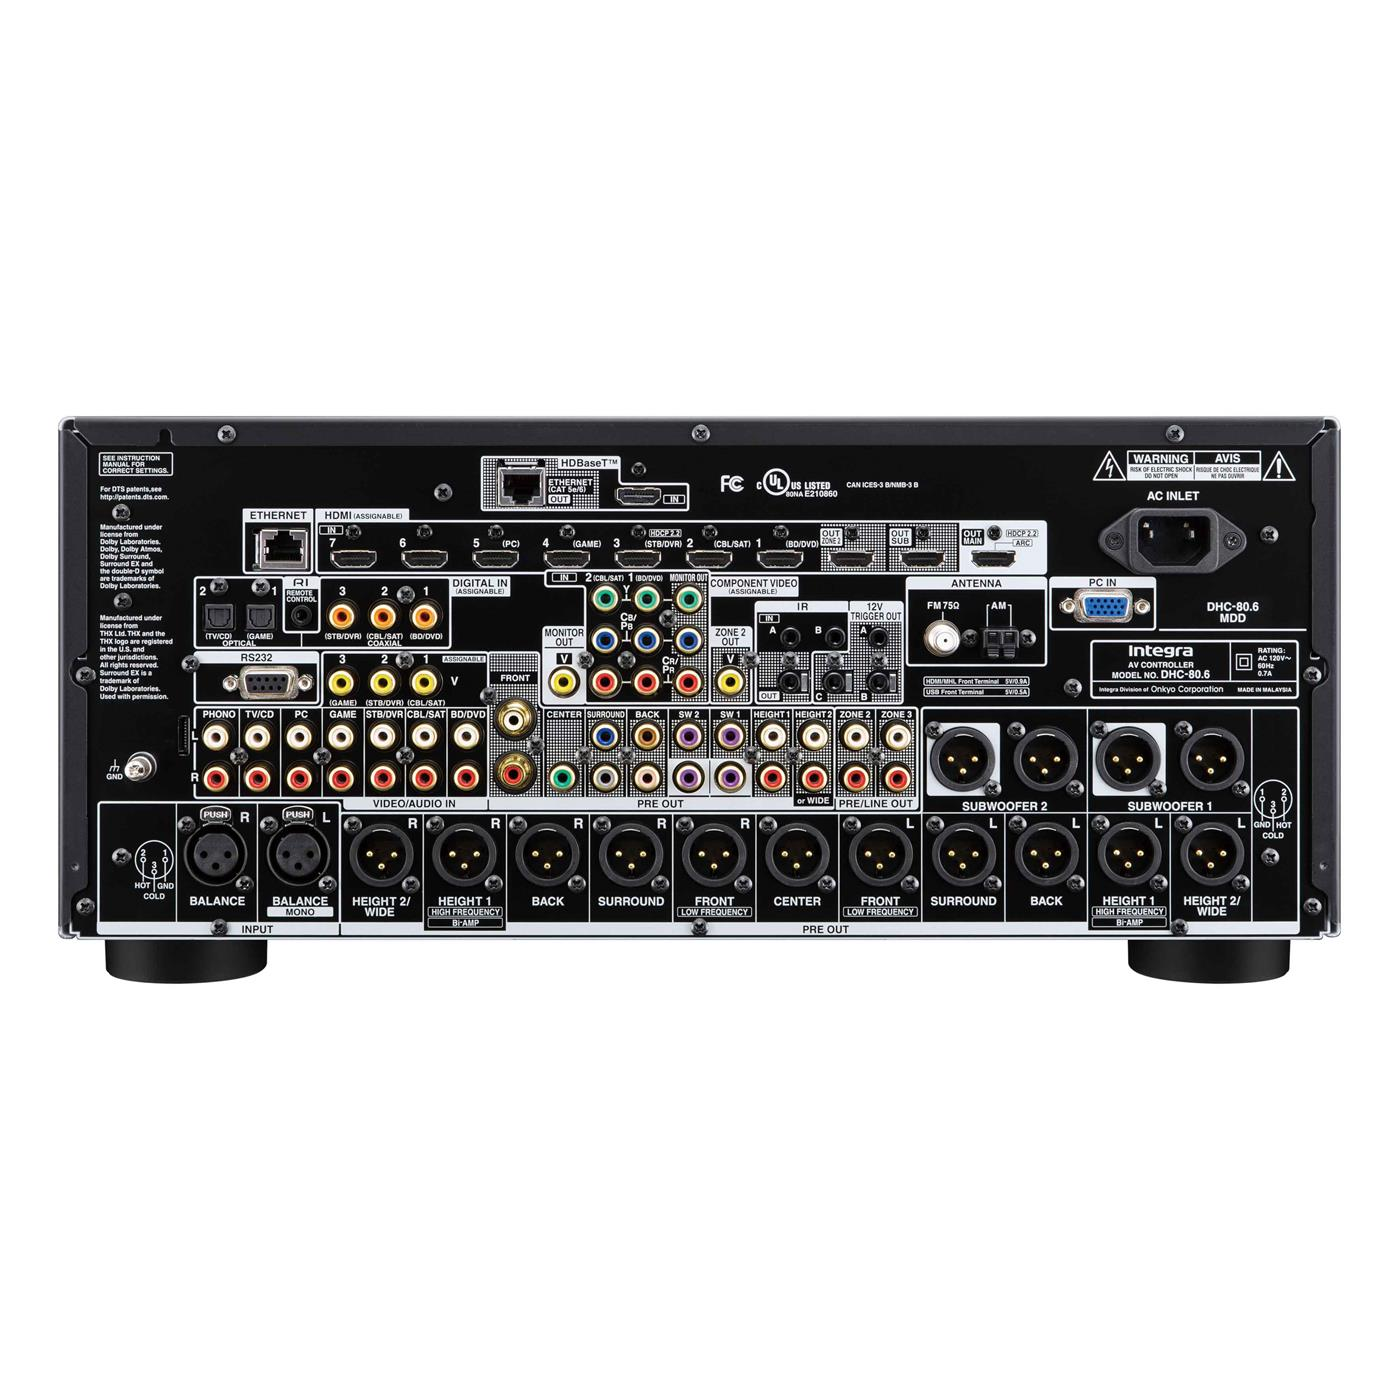 254453   Integra DHC 80.6 11.2 PROCESSOR/PREAMP 11.2 THX U2P / BAL.UT / HDBaseT / 4k60hz